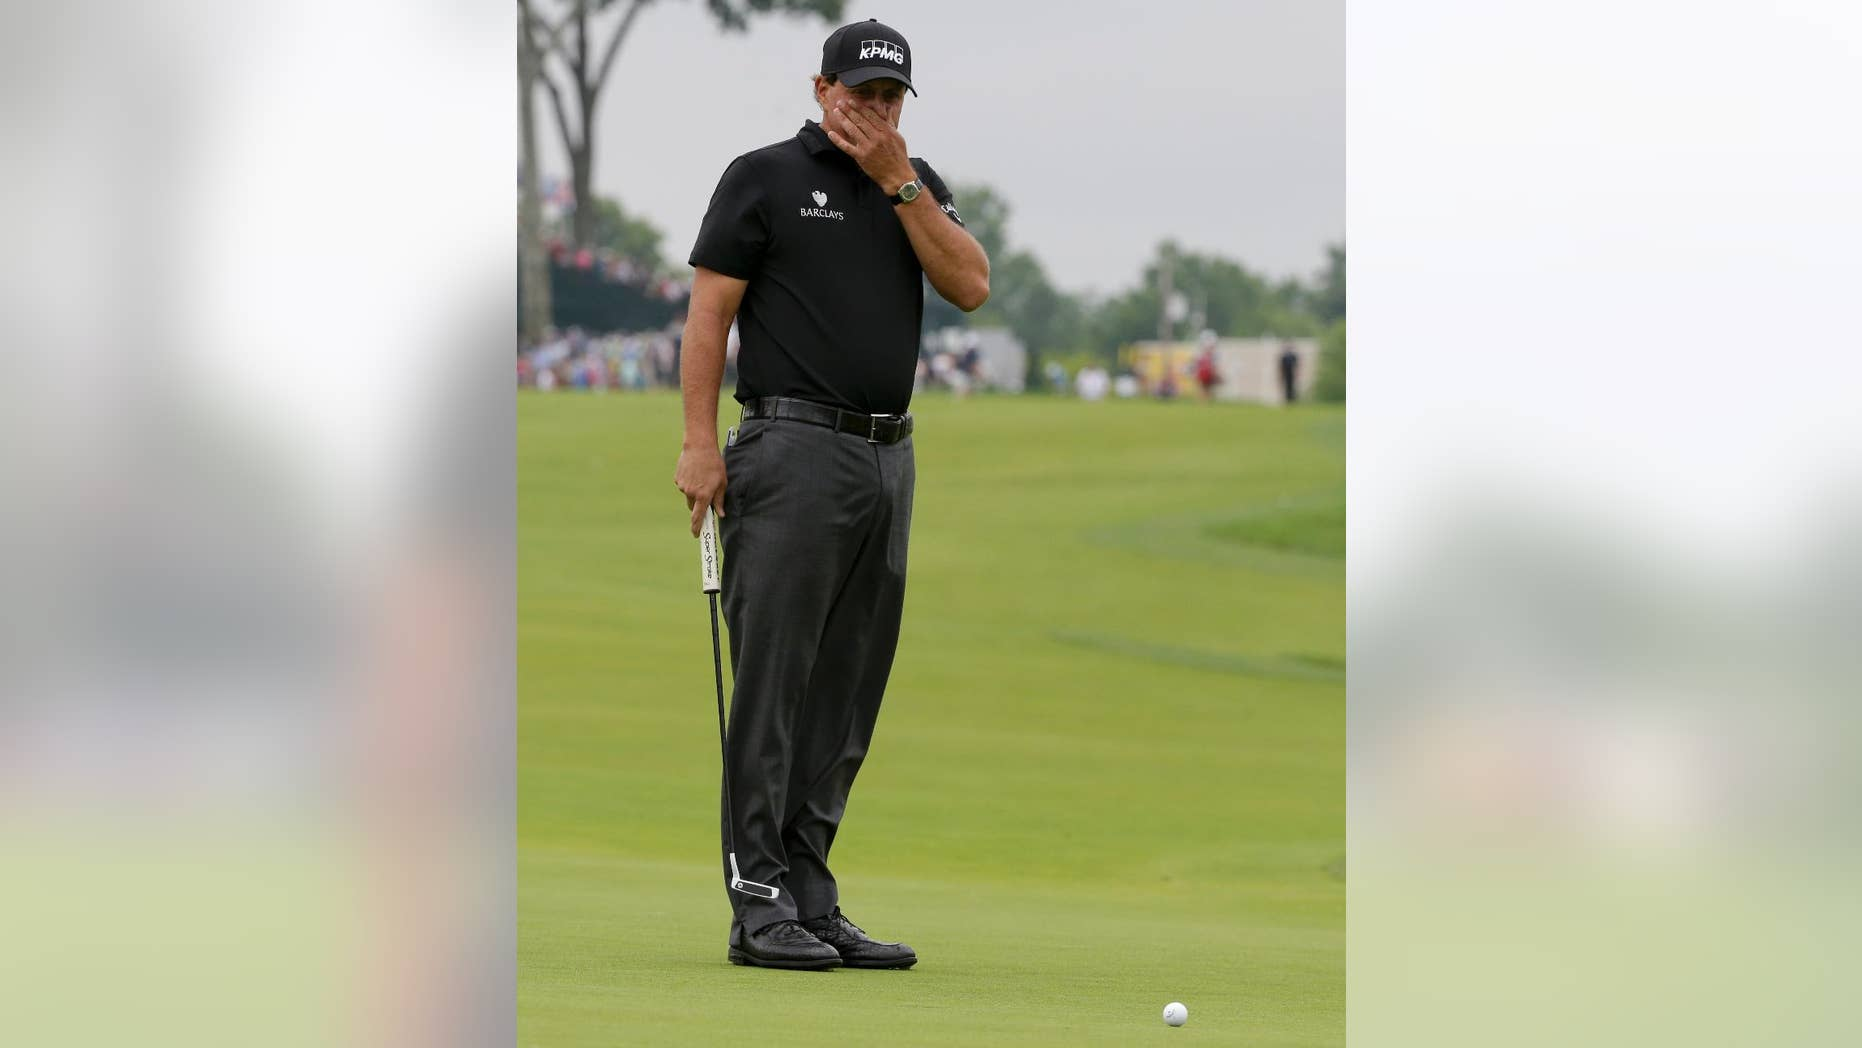 Phil Mickelson watches his putt on the 10th hole during the rain delayed first round of the U.S. Open golf championship at Oakmont Country Club on Friday, June 17, 2016, in Oakmont, Pa. (AP Photo/Gene J. Puskar)